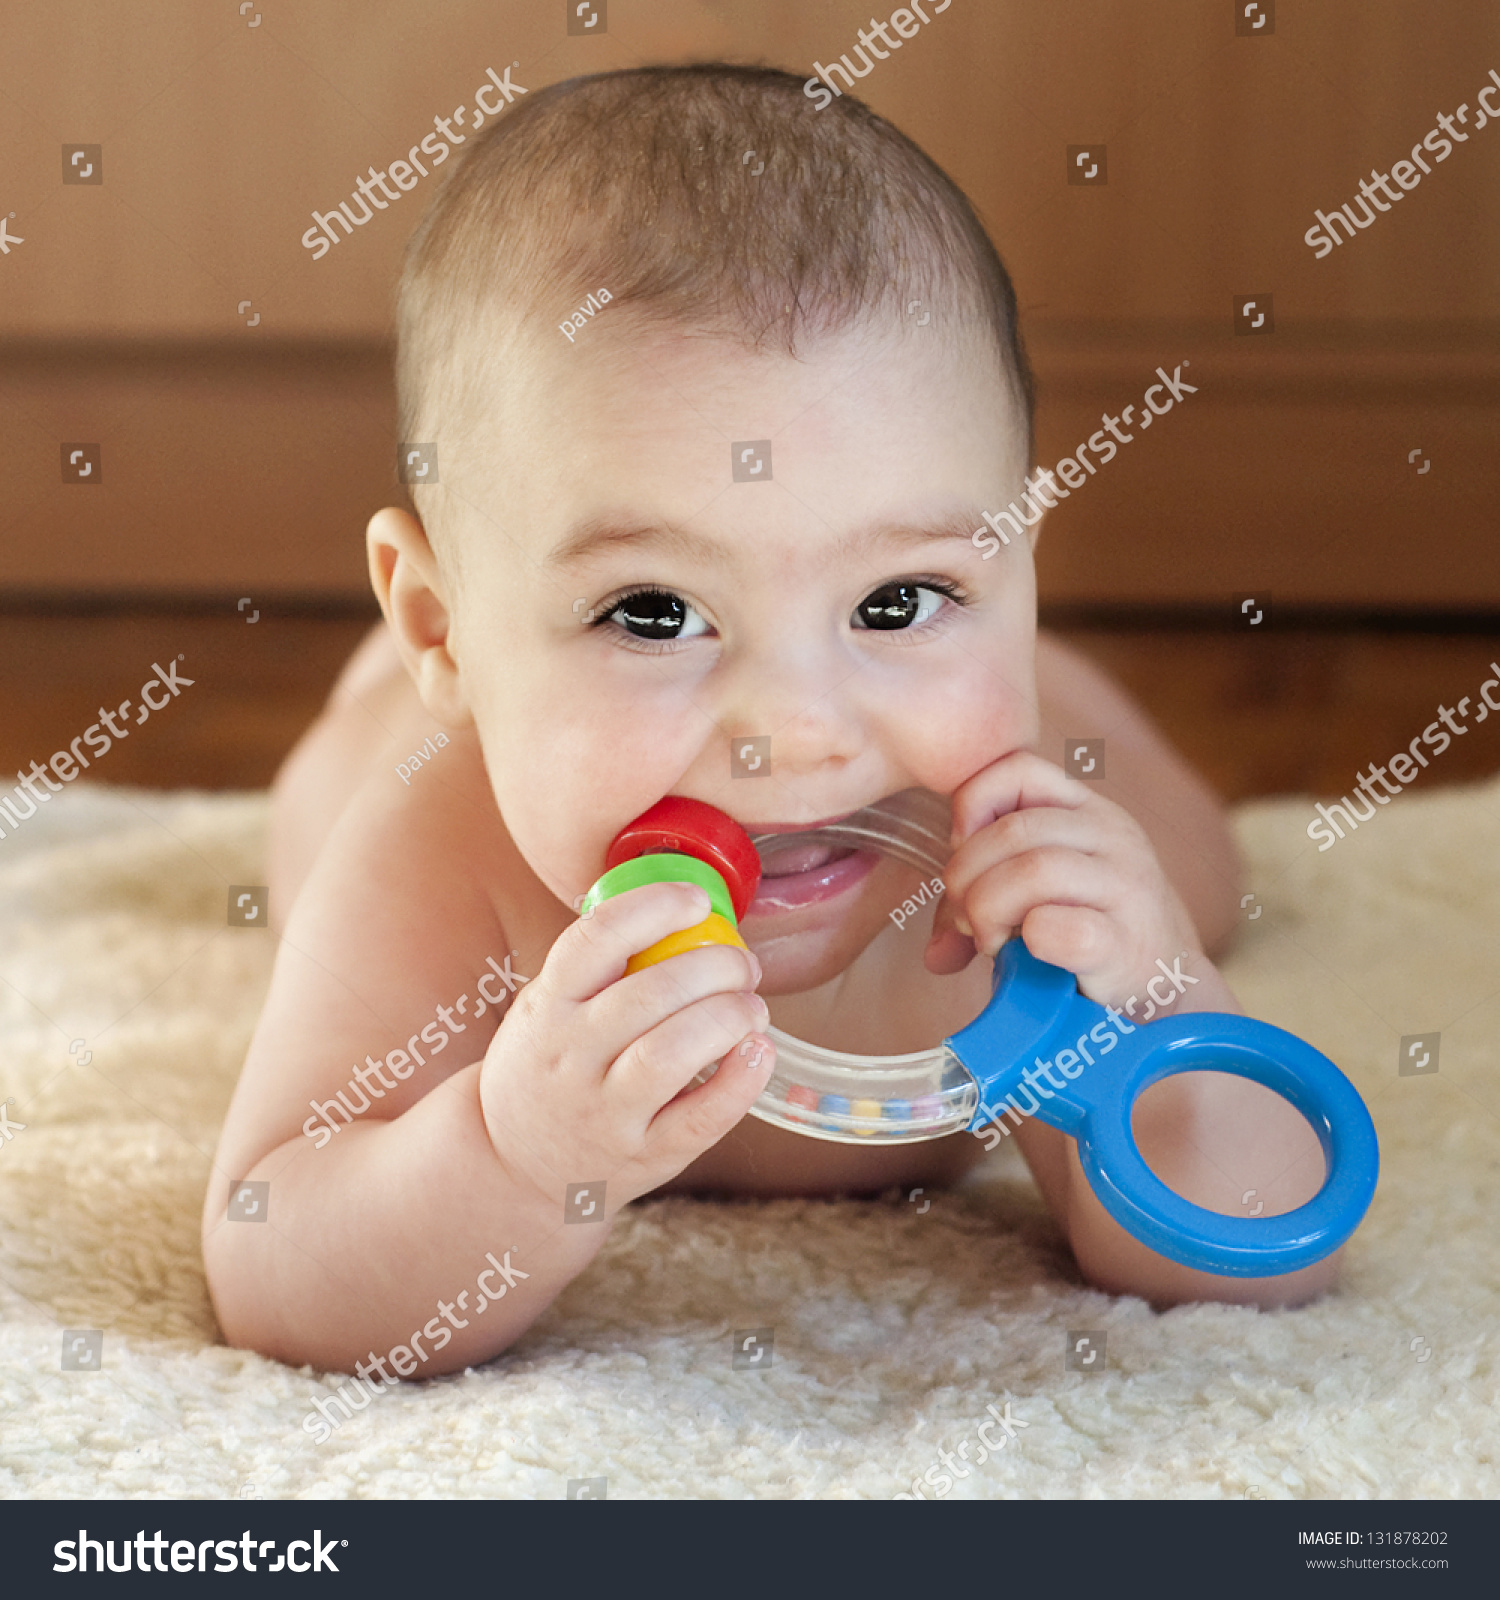 6 Month Old Baby Toys Portrait Cute 6 Month Old Baby Stock Photo 131878202